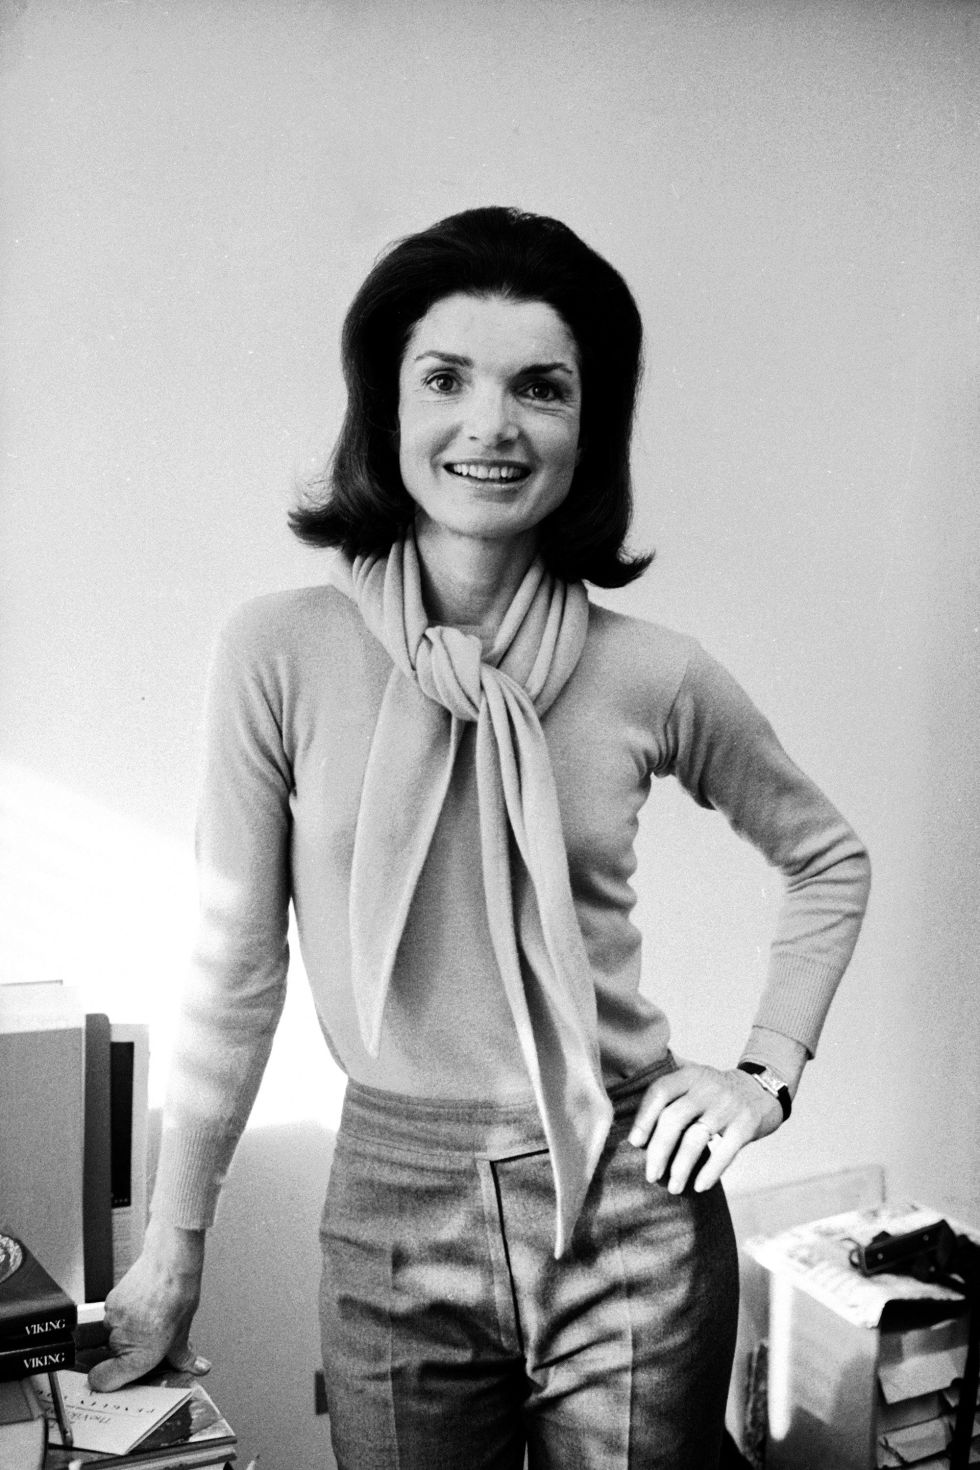 gallery-1438113542-hbz-jackie-kennedy-additions-gettyimages-2902616